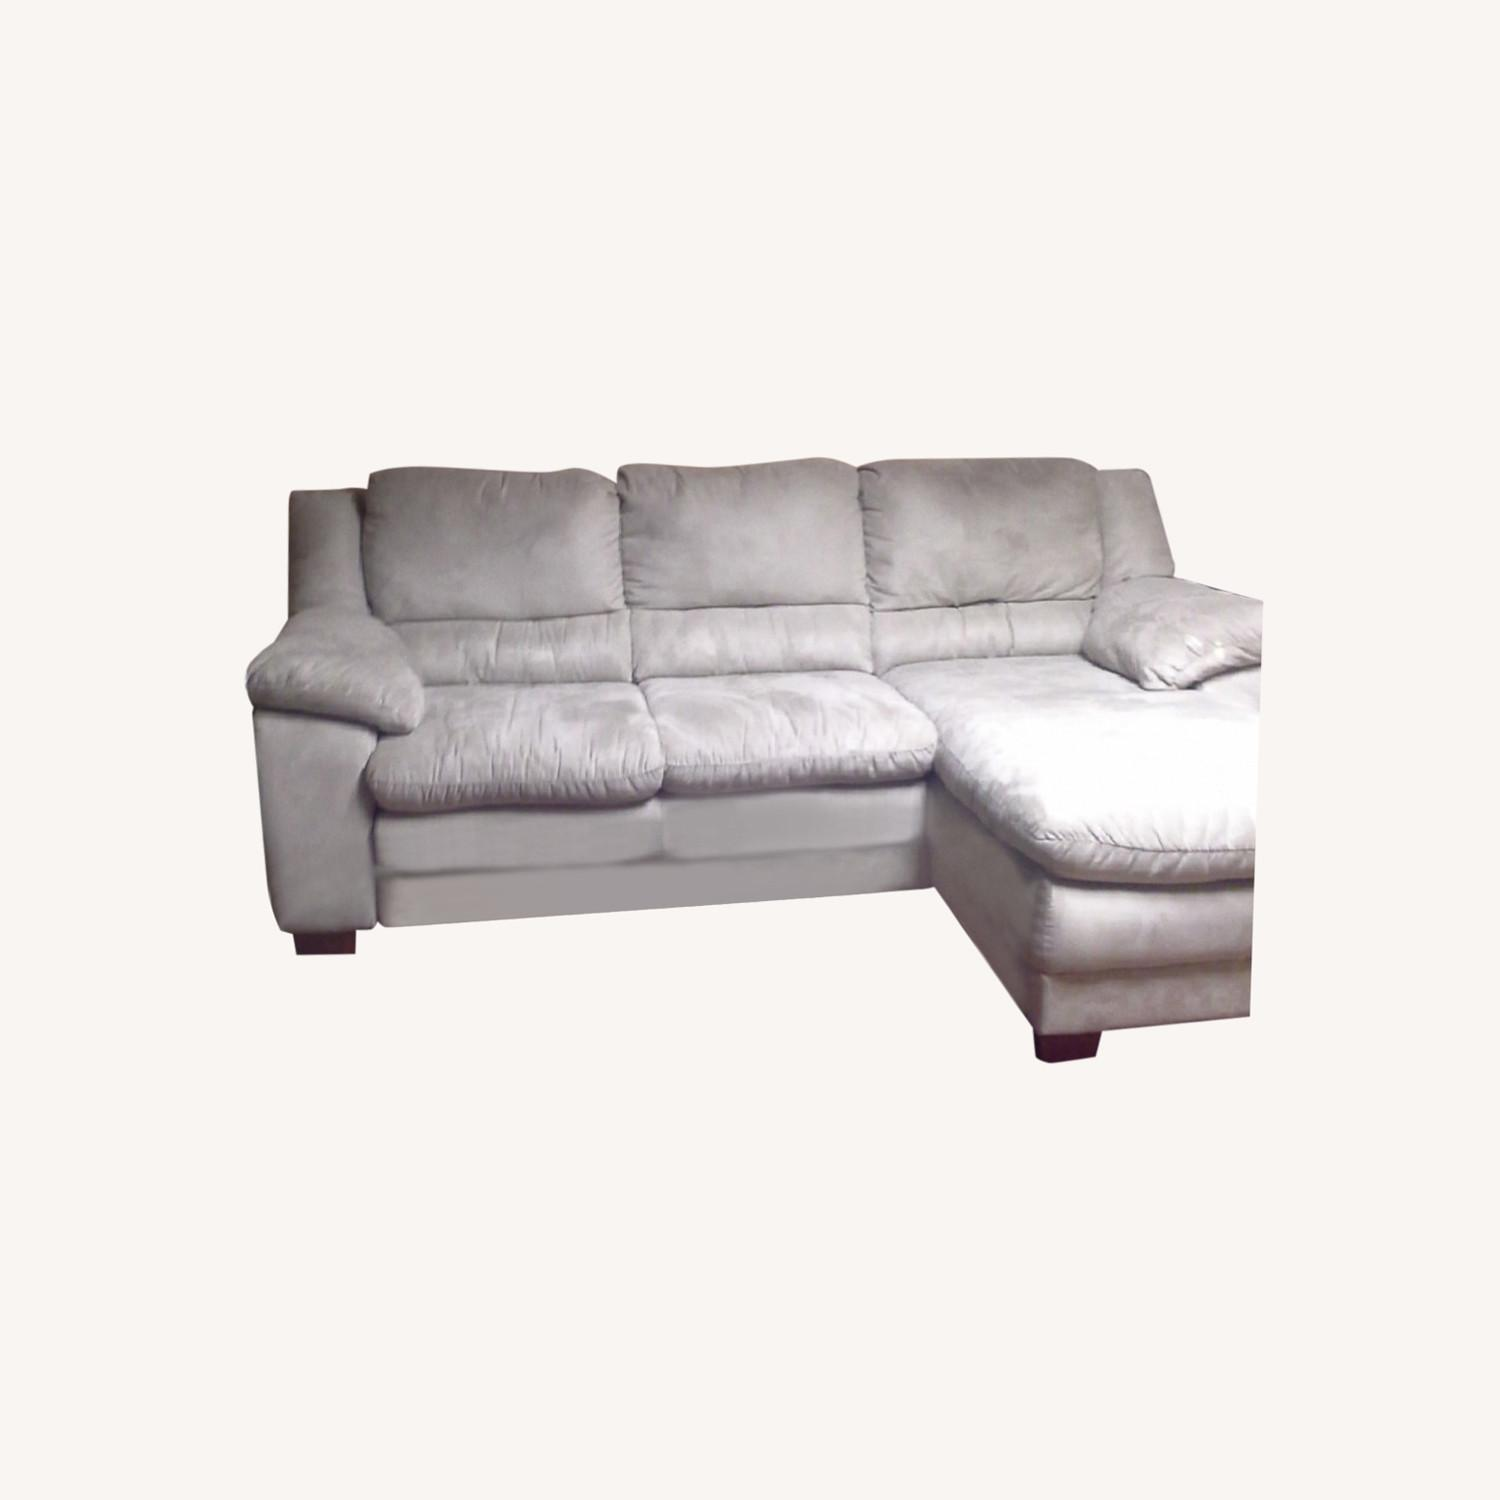 Raymour & Flanigan Sofa with Chaise - image-0